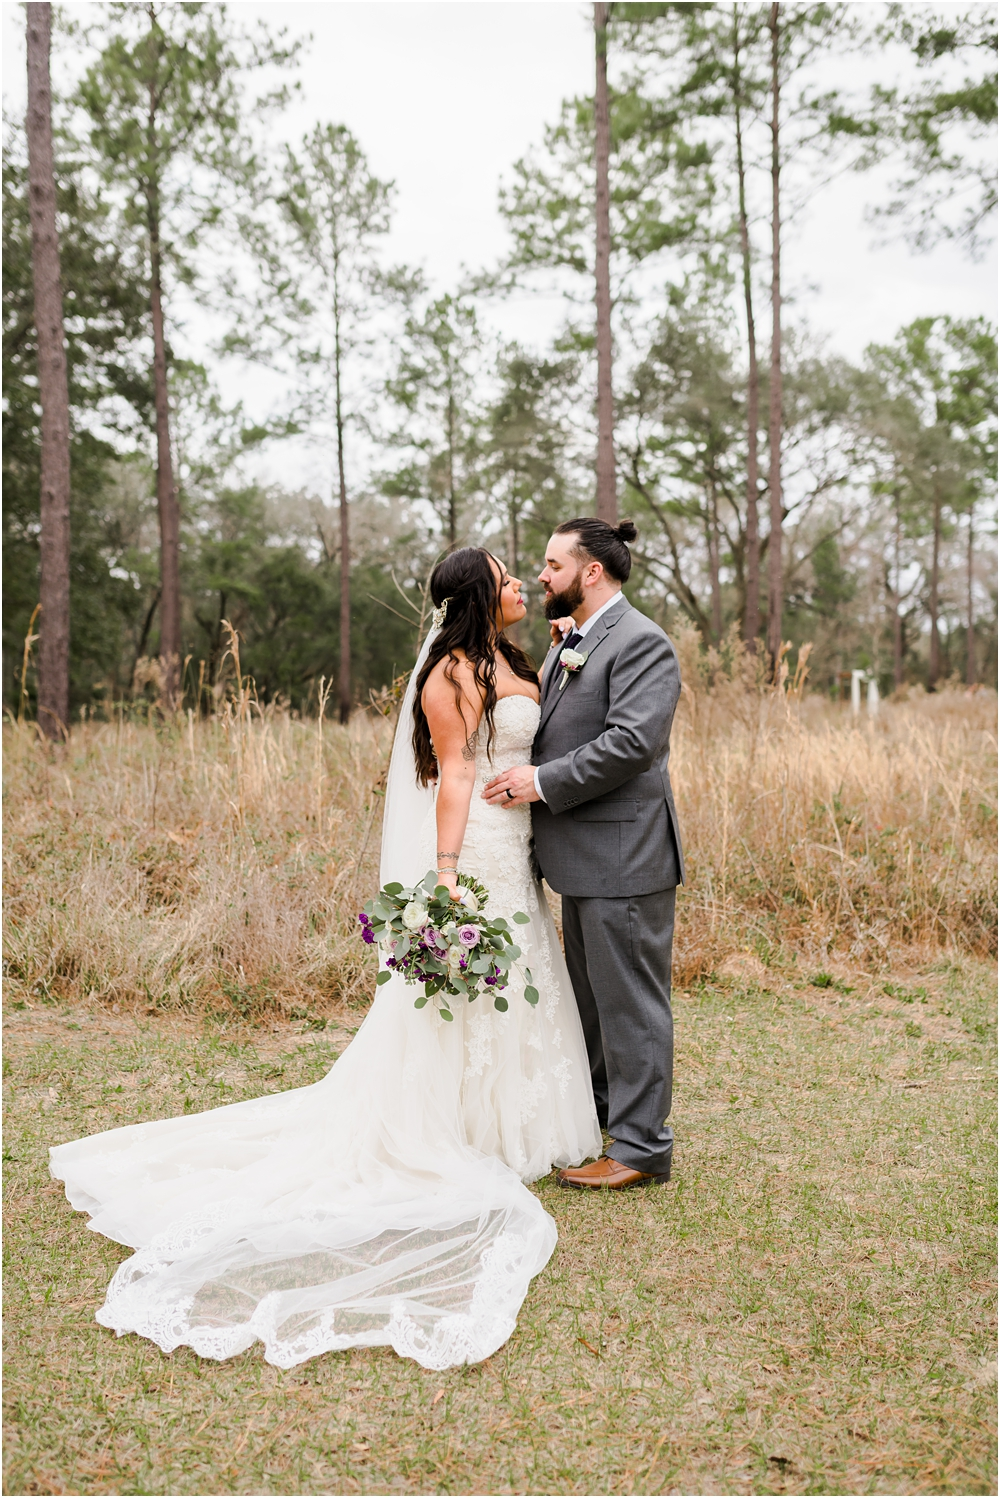 loblolly-rise-tallahassee-wedding-kiersten-stevenson-photography-73.jpg